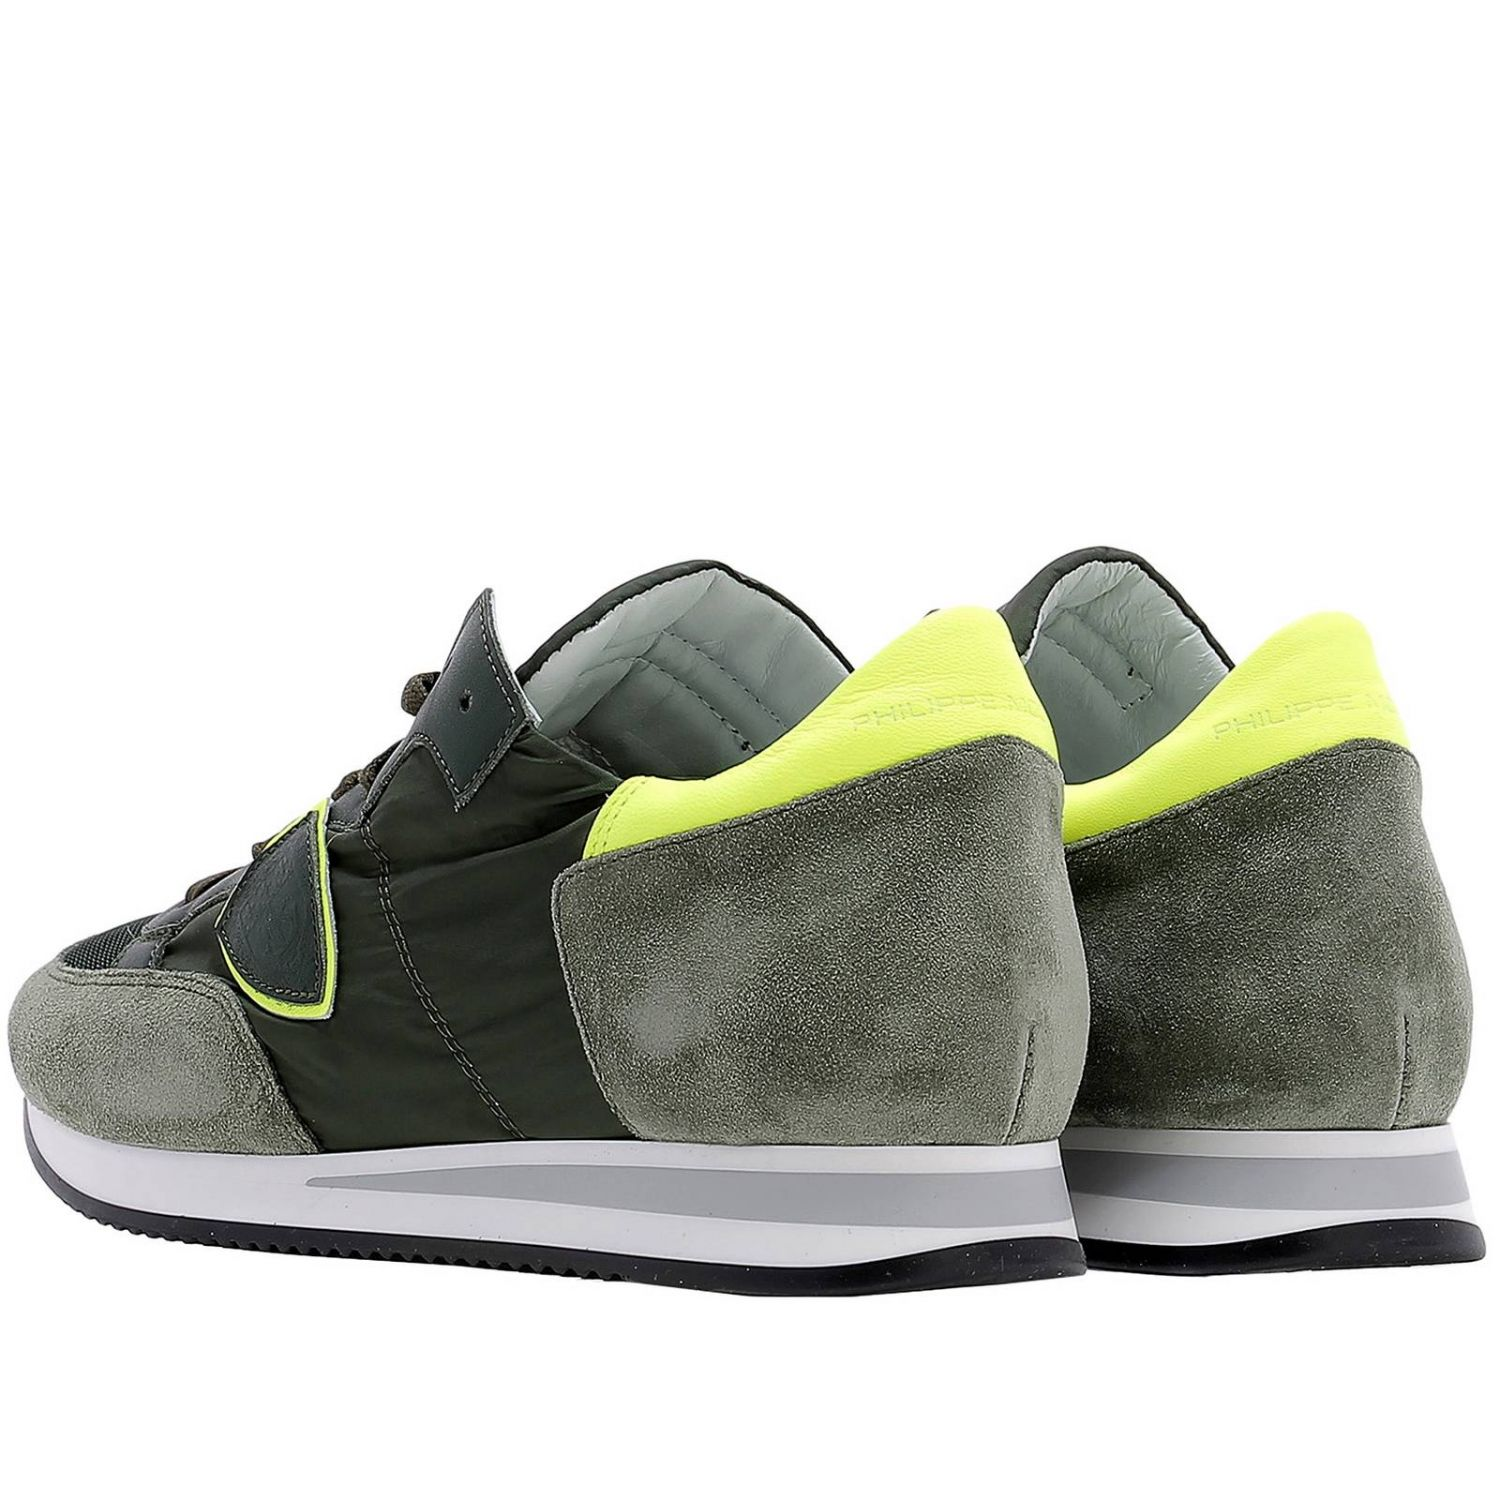 Baskets Philippe Model: Chaussures homme Philippe Model vert acide 3